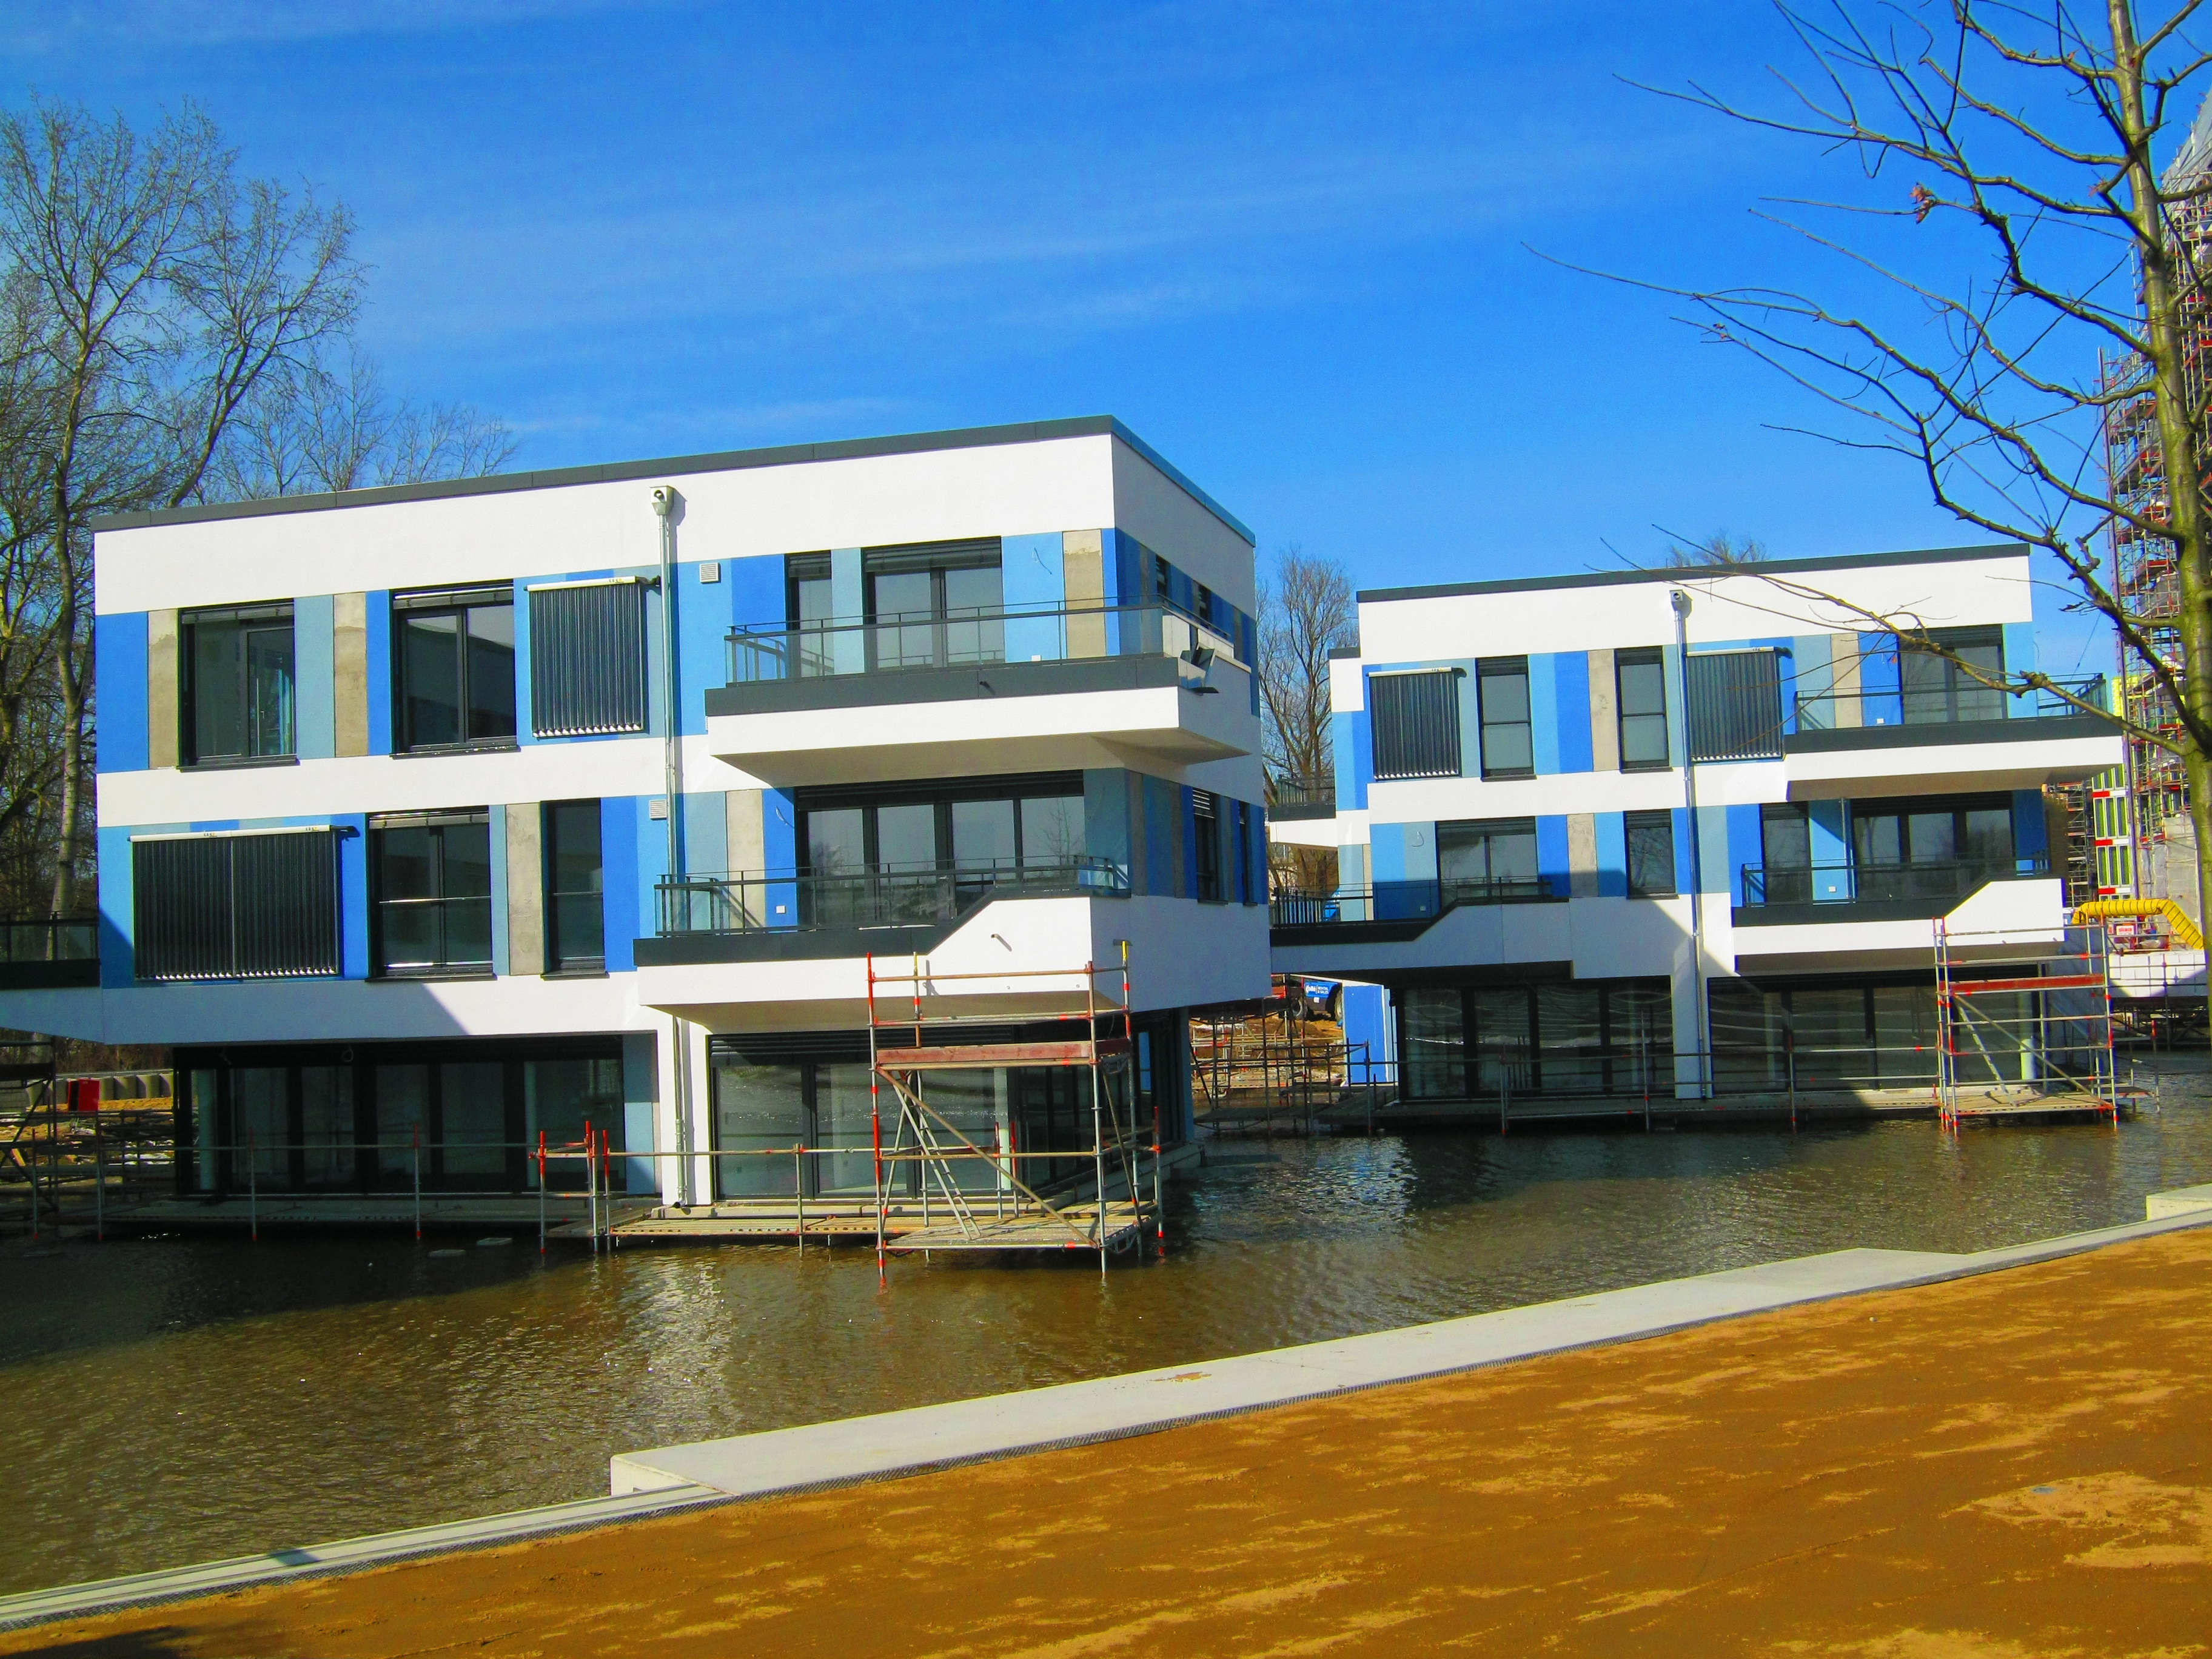 File water houses jpg wikimedia commons for Houses images pictures